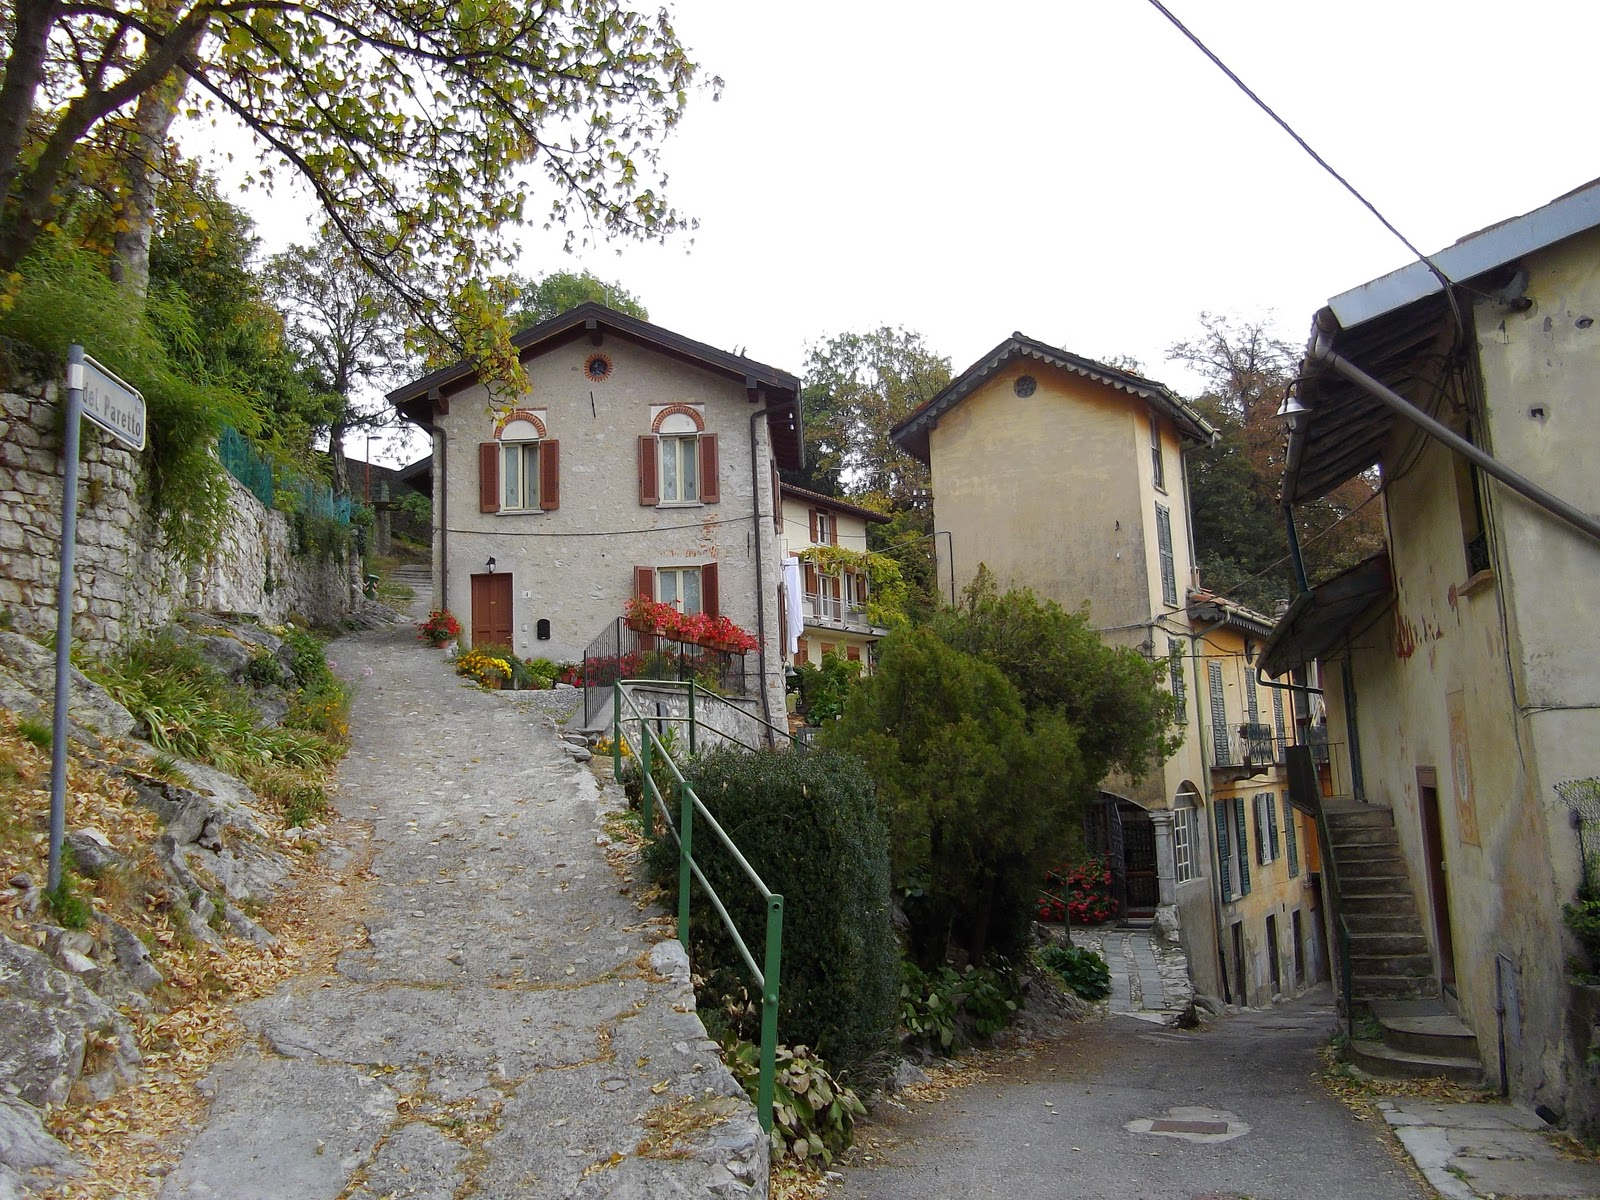 Varese Italy  city photo : Trip to Sacro Monte, Varese, Italy part 2   Life in Luxembourg